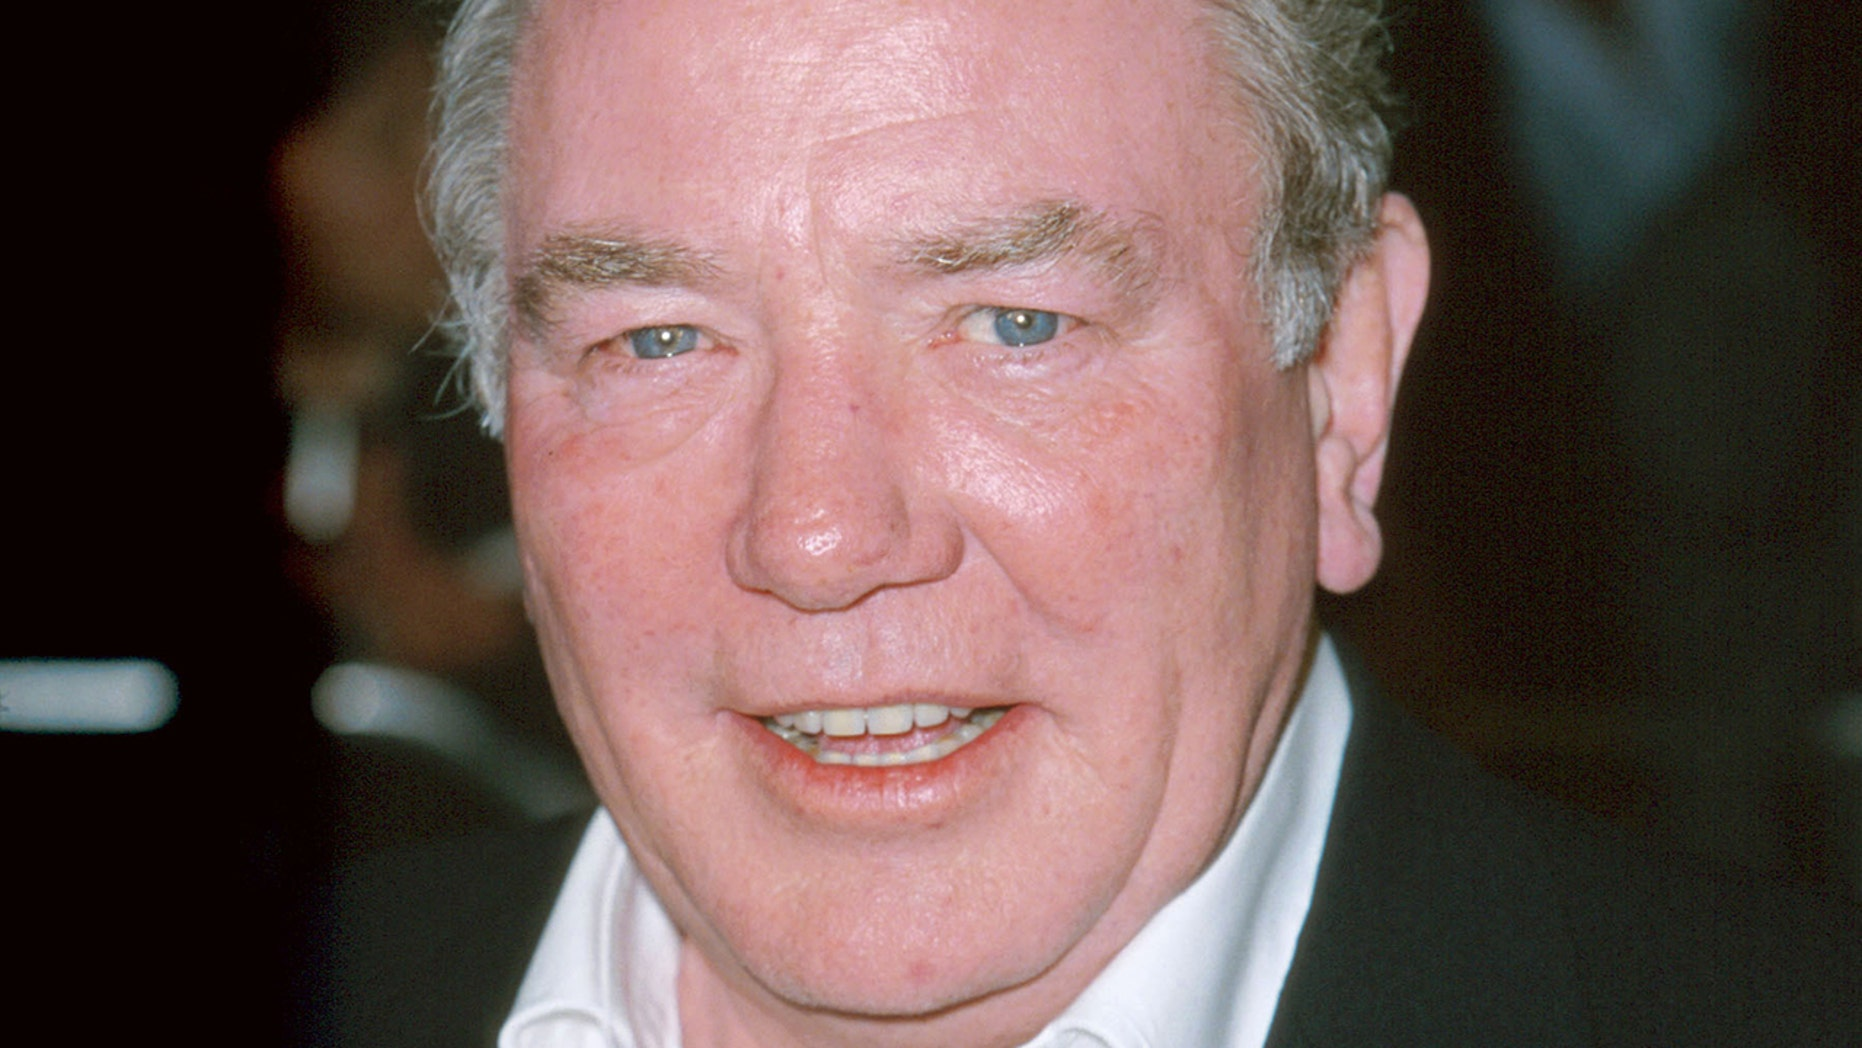 Actor Albert Finney dies aged 82 after short illness, family say